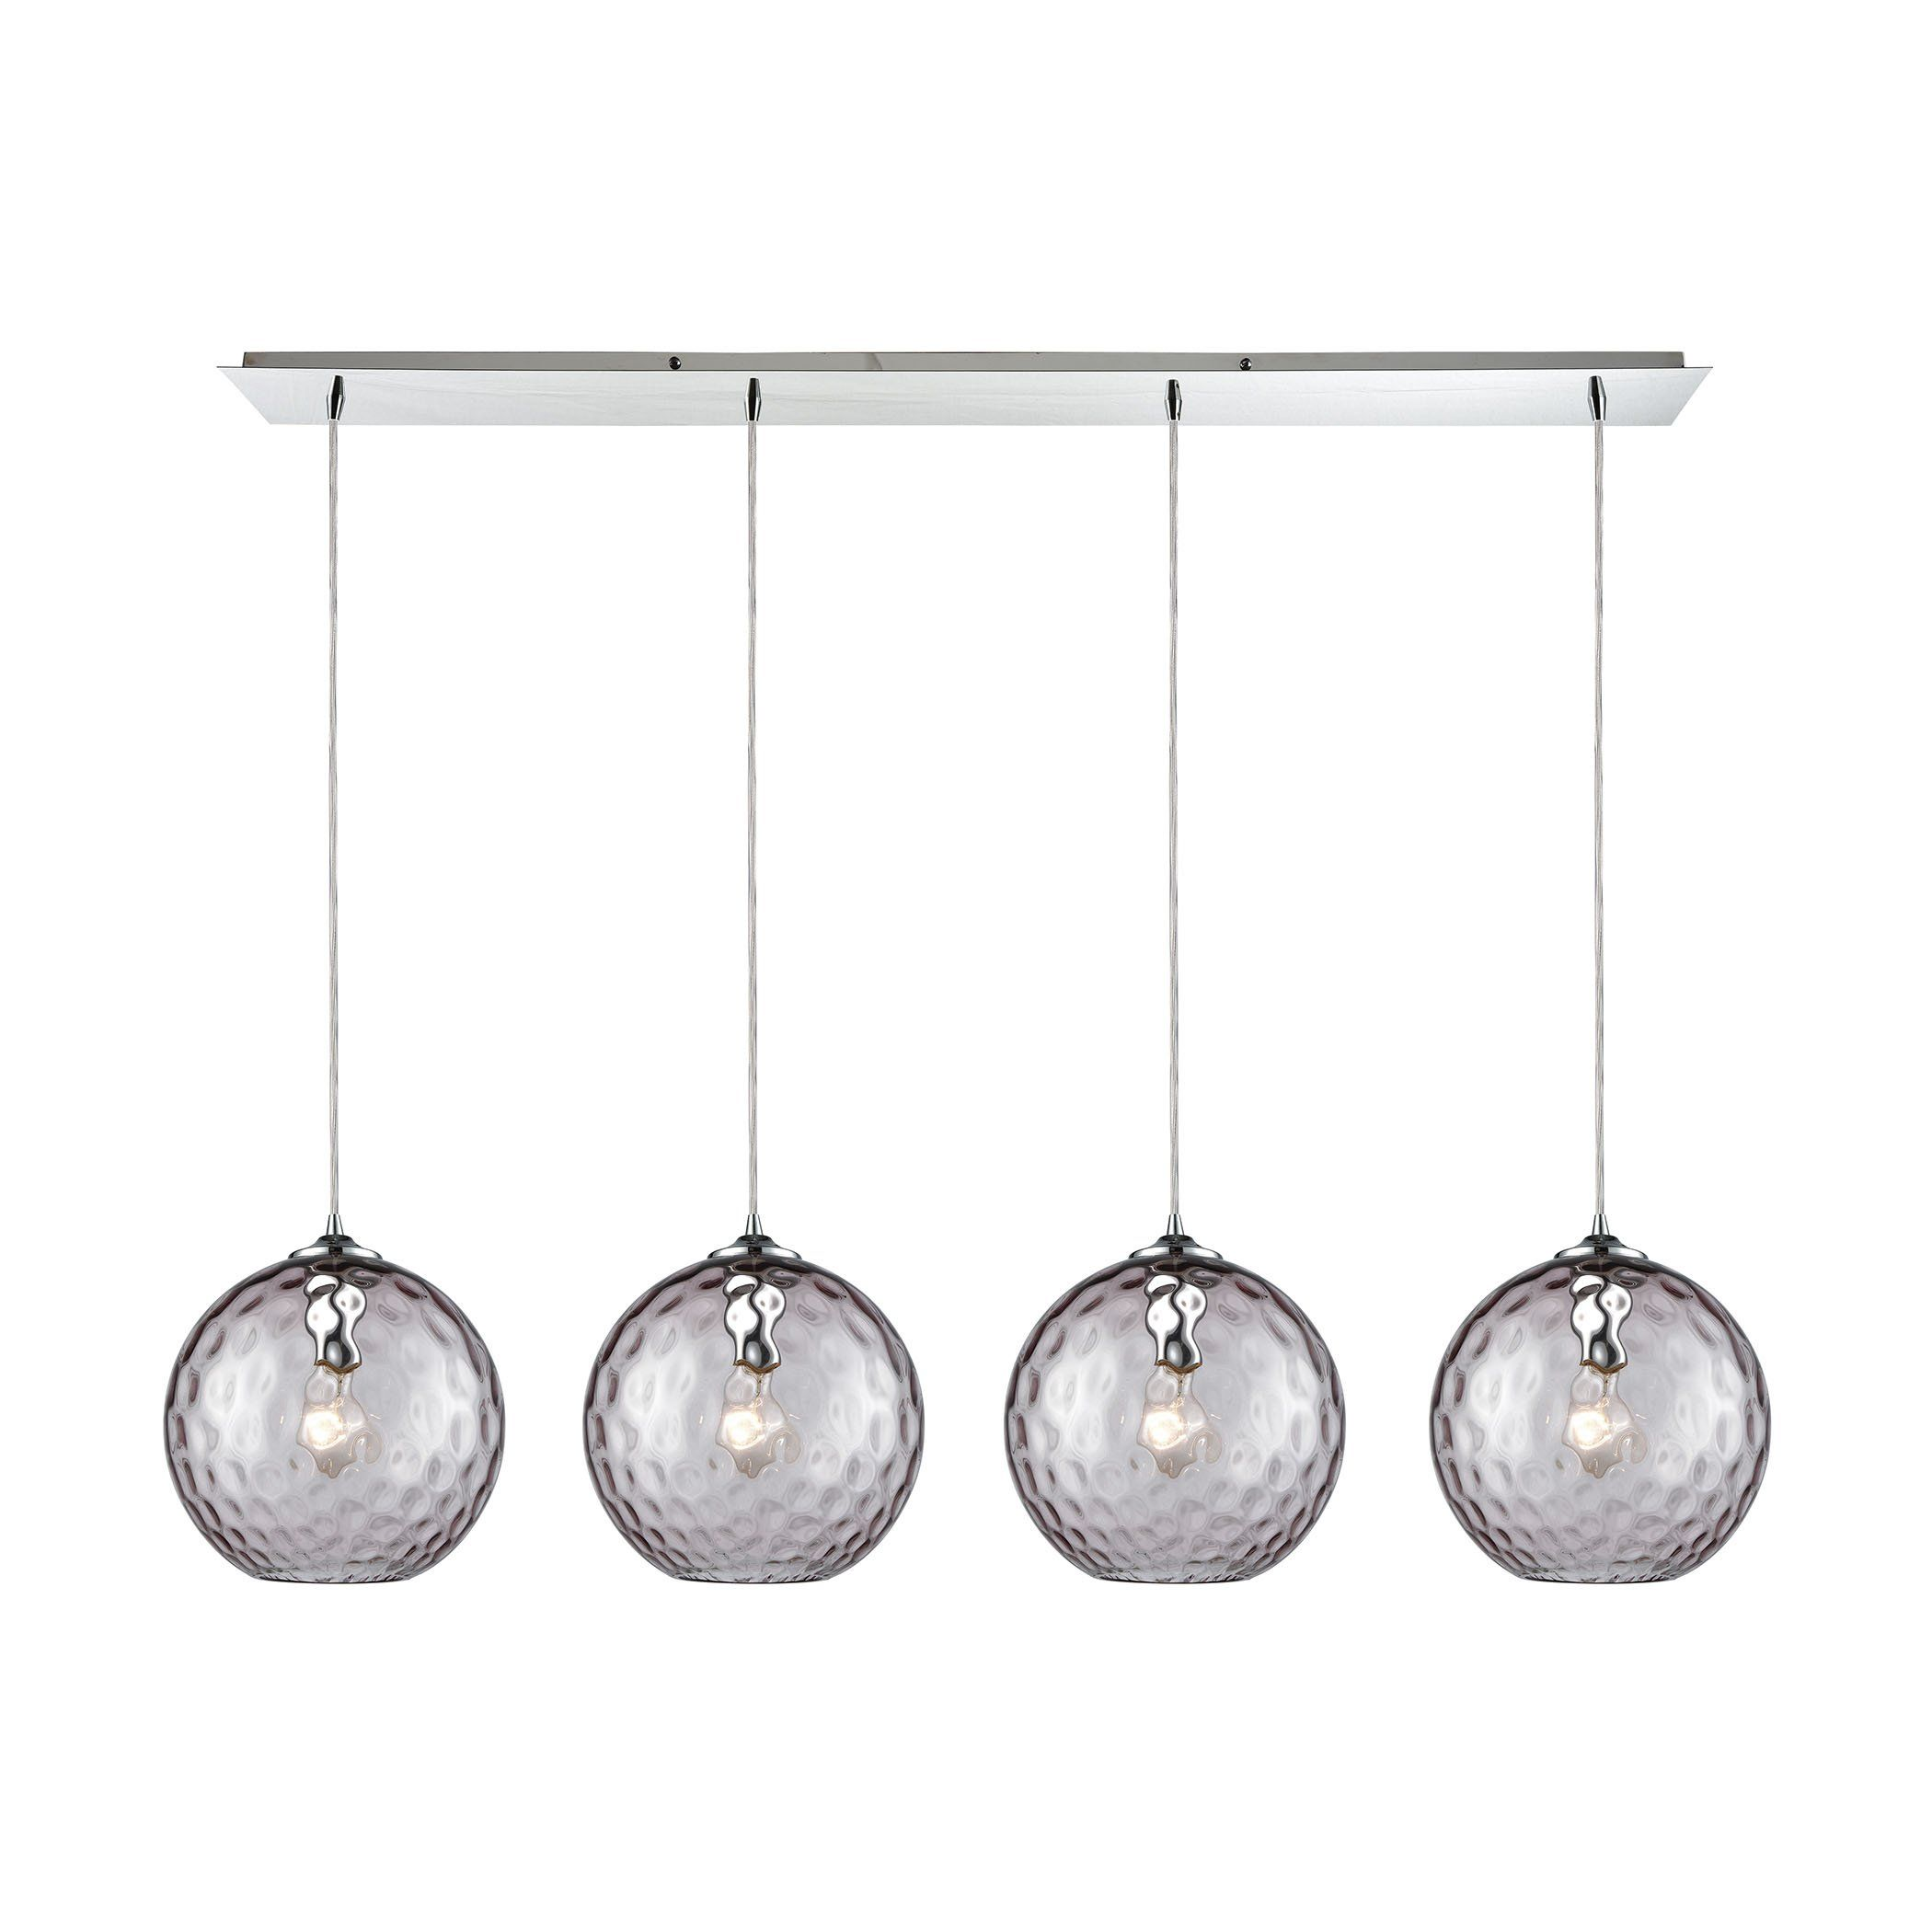 Watersphere light linear pan fixture in polished chrome with